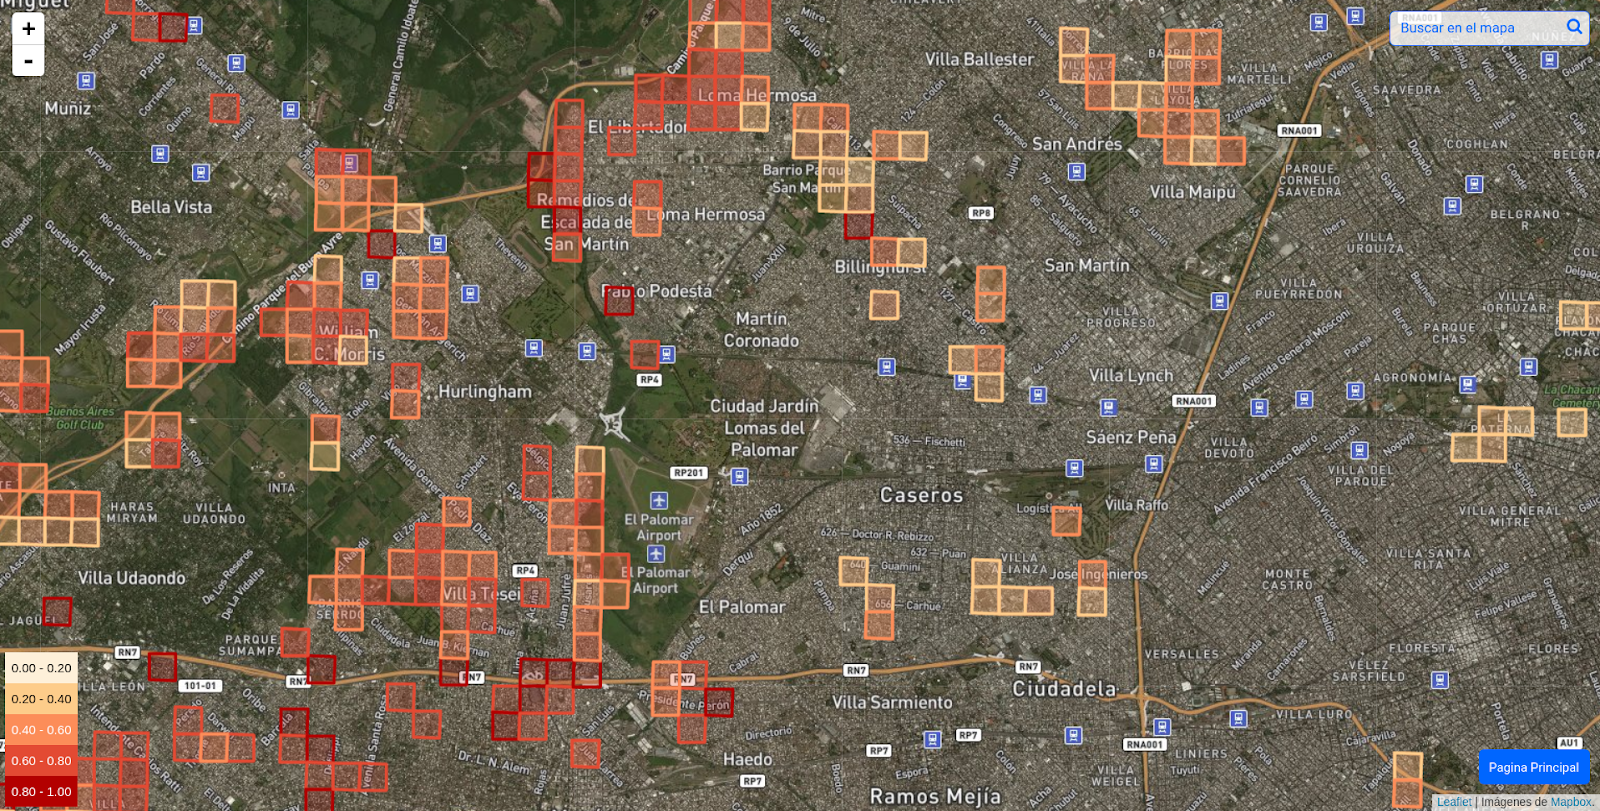 Detecting informal settlements in South America: How I built it